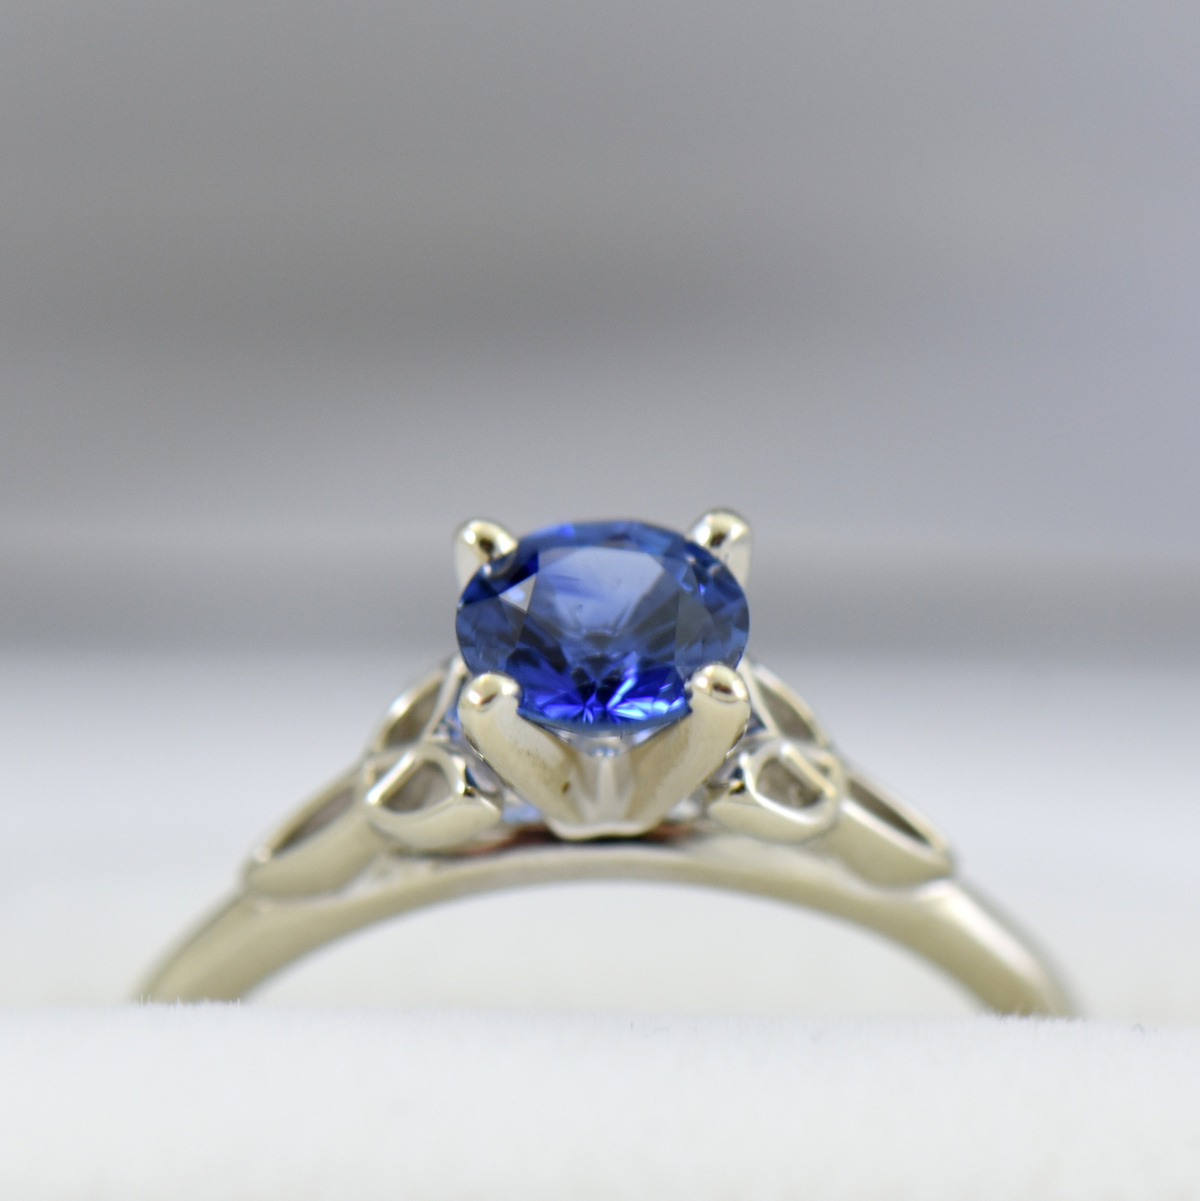 1ct Round Blue Sapphire Solitaire Ring with Celtic Trinity Accents 4.JPG